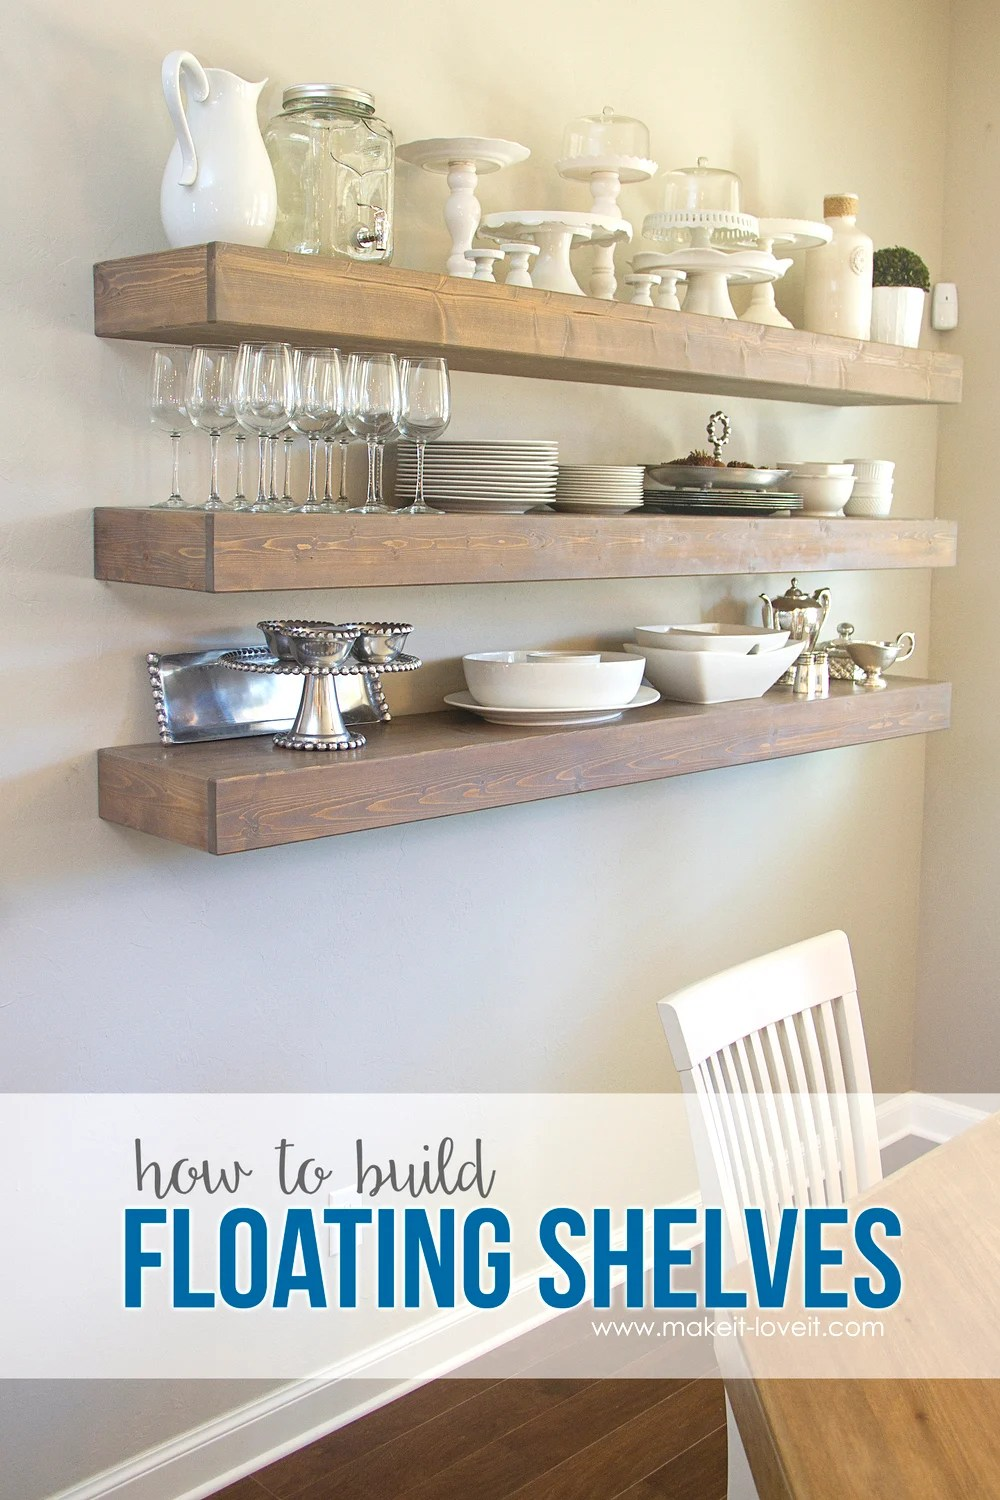 How To Build Simple Floating Shelves For Any Room In The House Make It And Love It